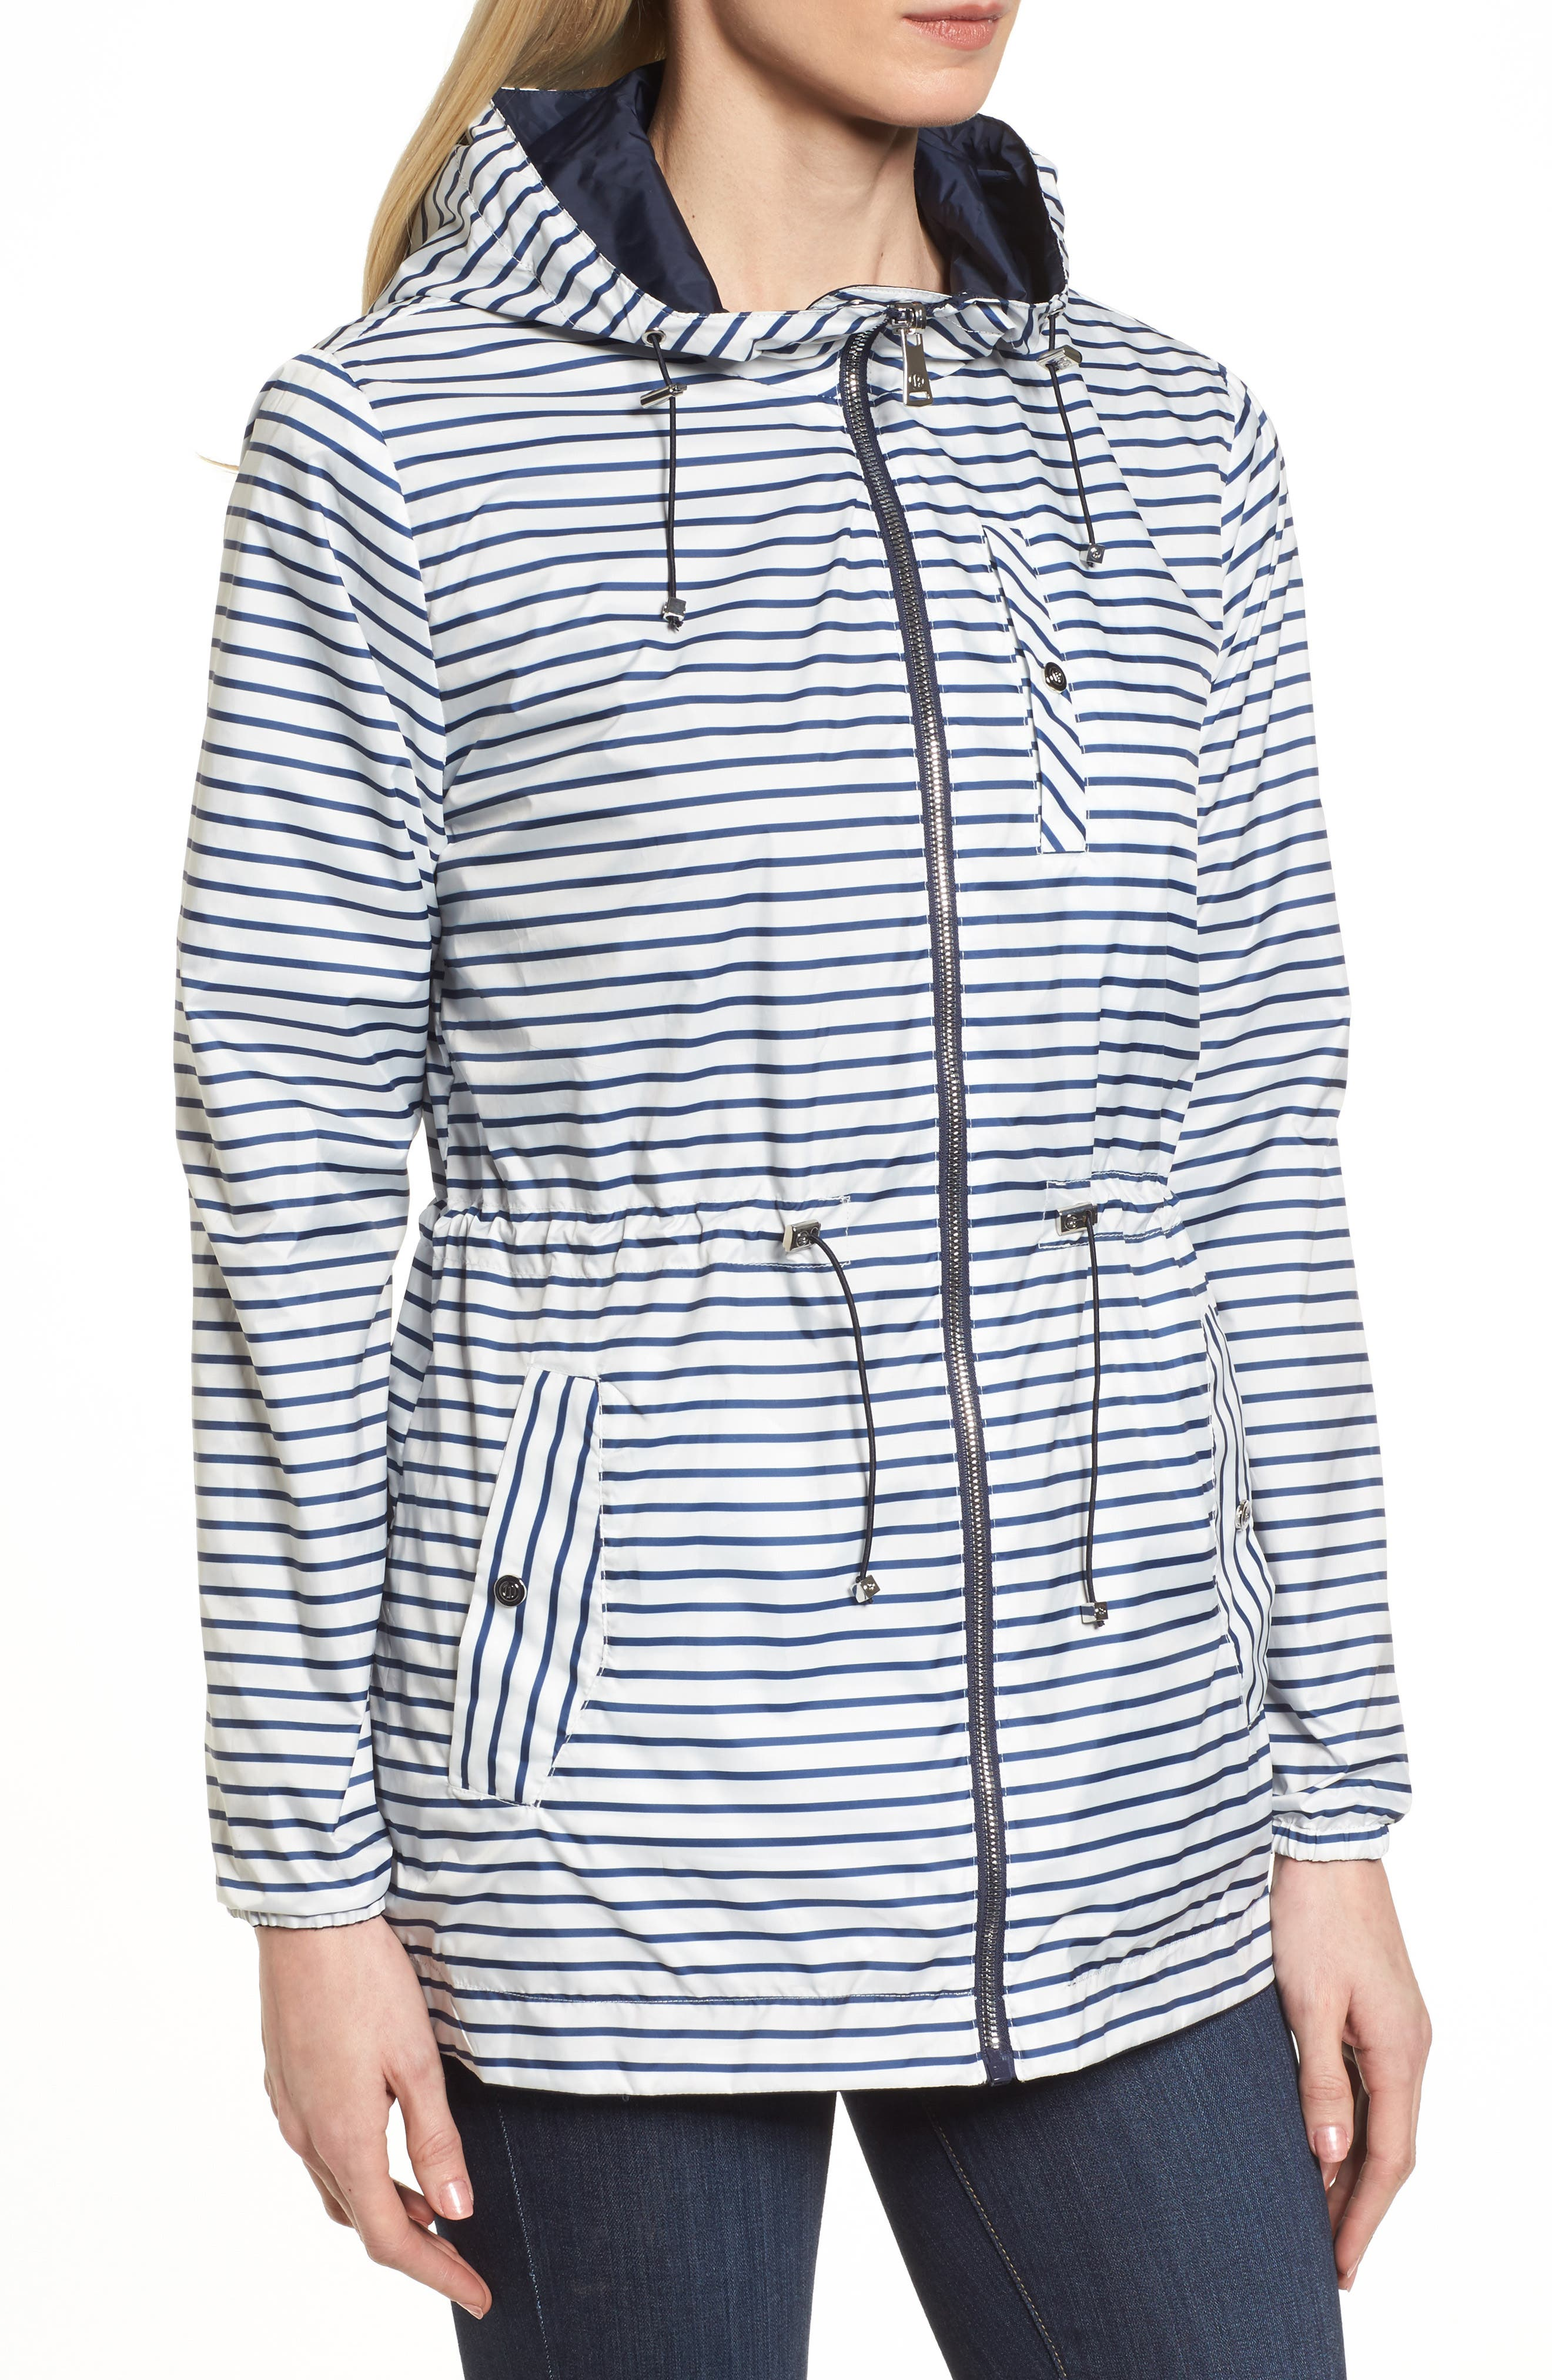 Solid to Stripe Reversible Jacket,                             Alternate thumbnail 4, color,                             412